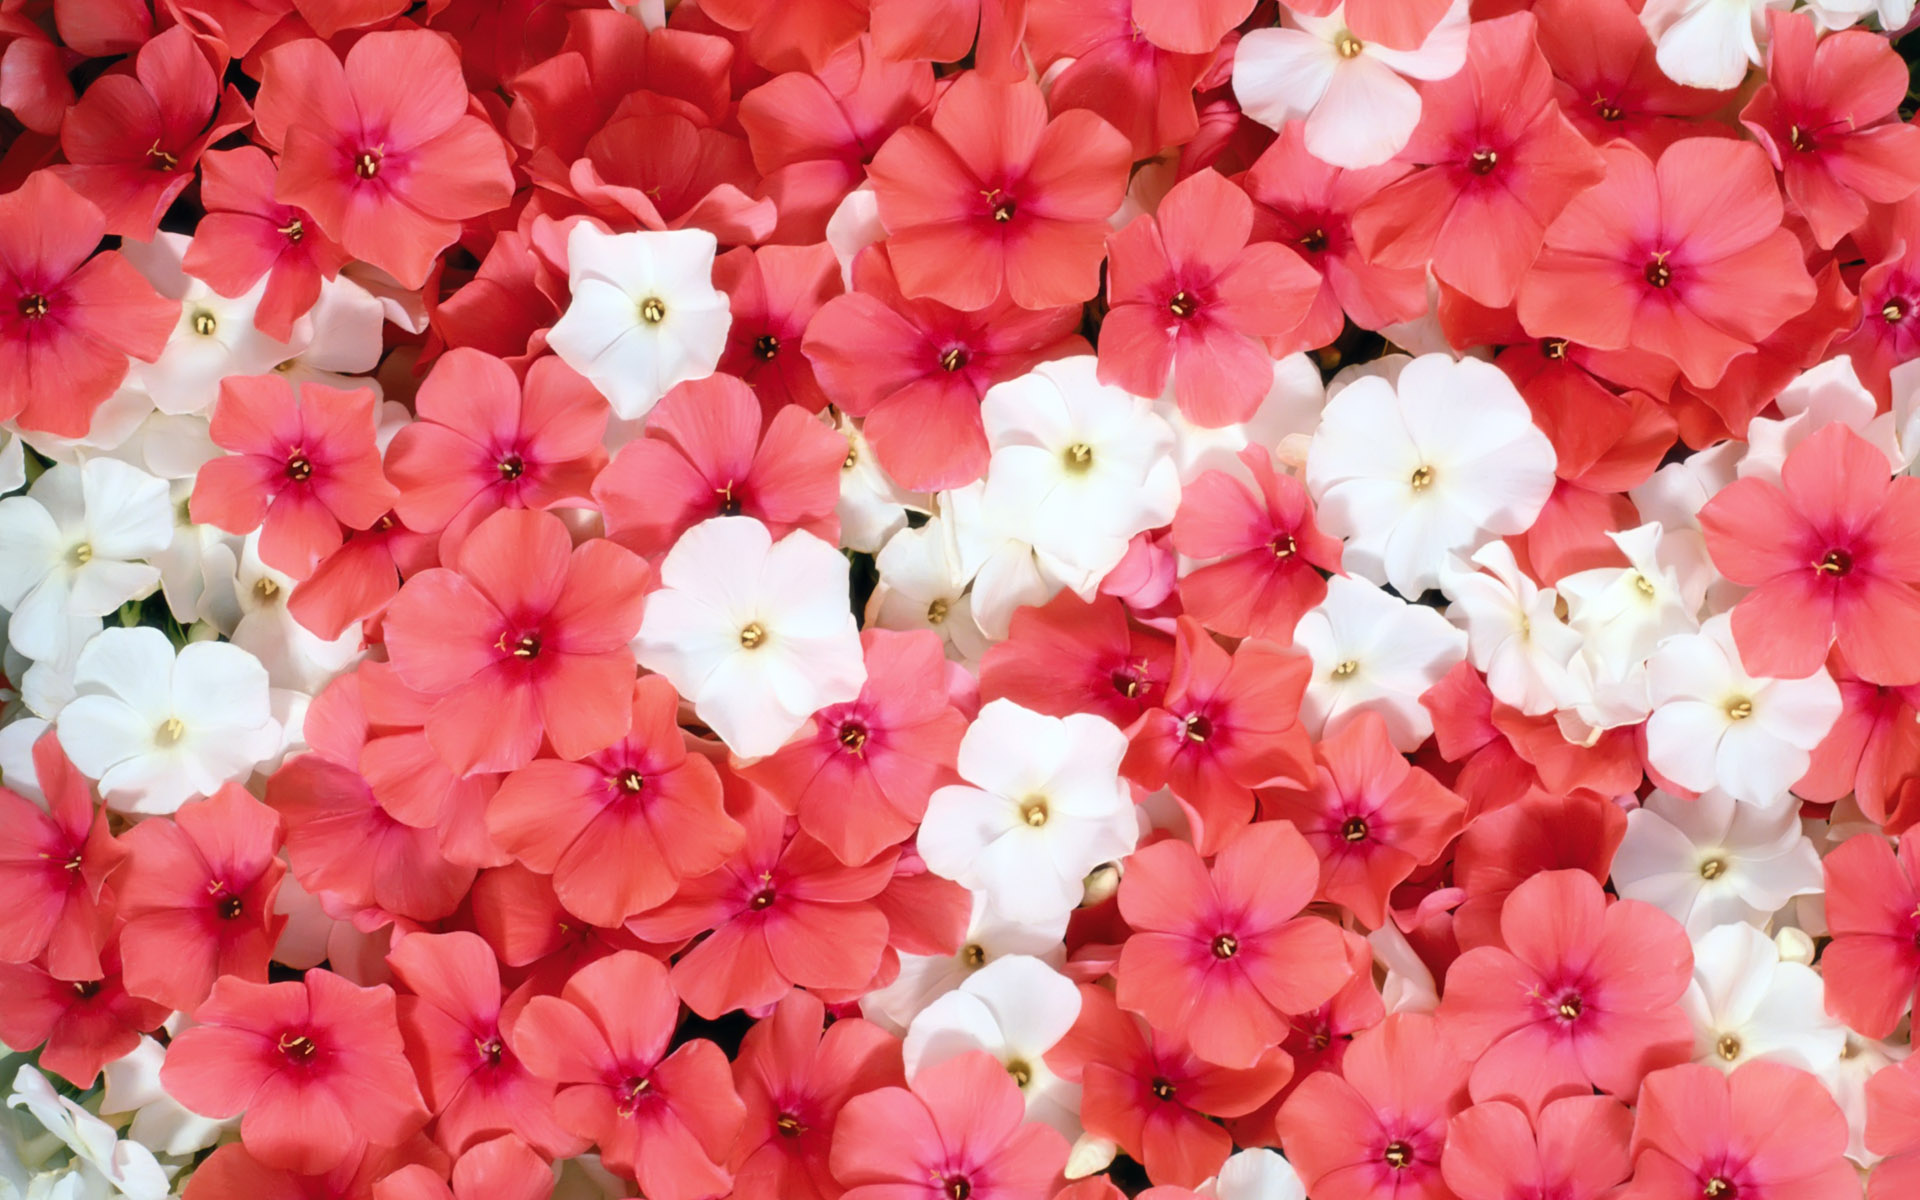 pink and white phlox flowers hd wallpaper | background image